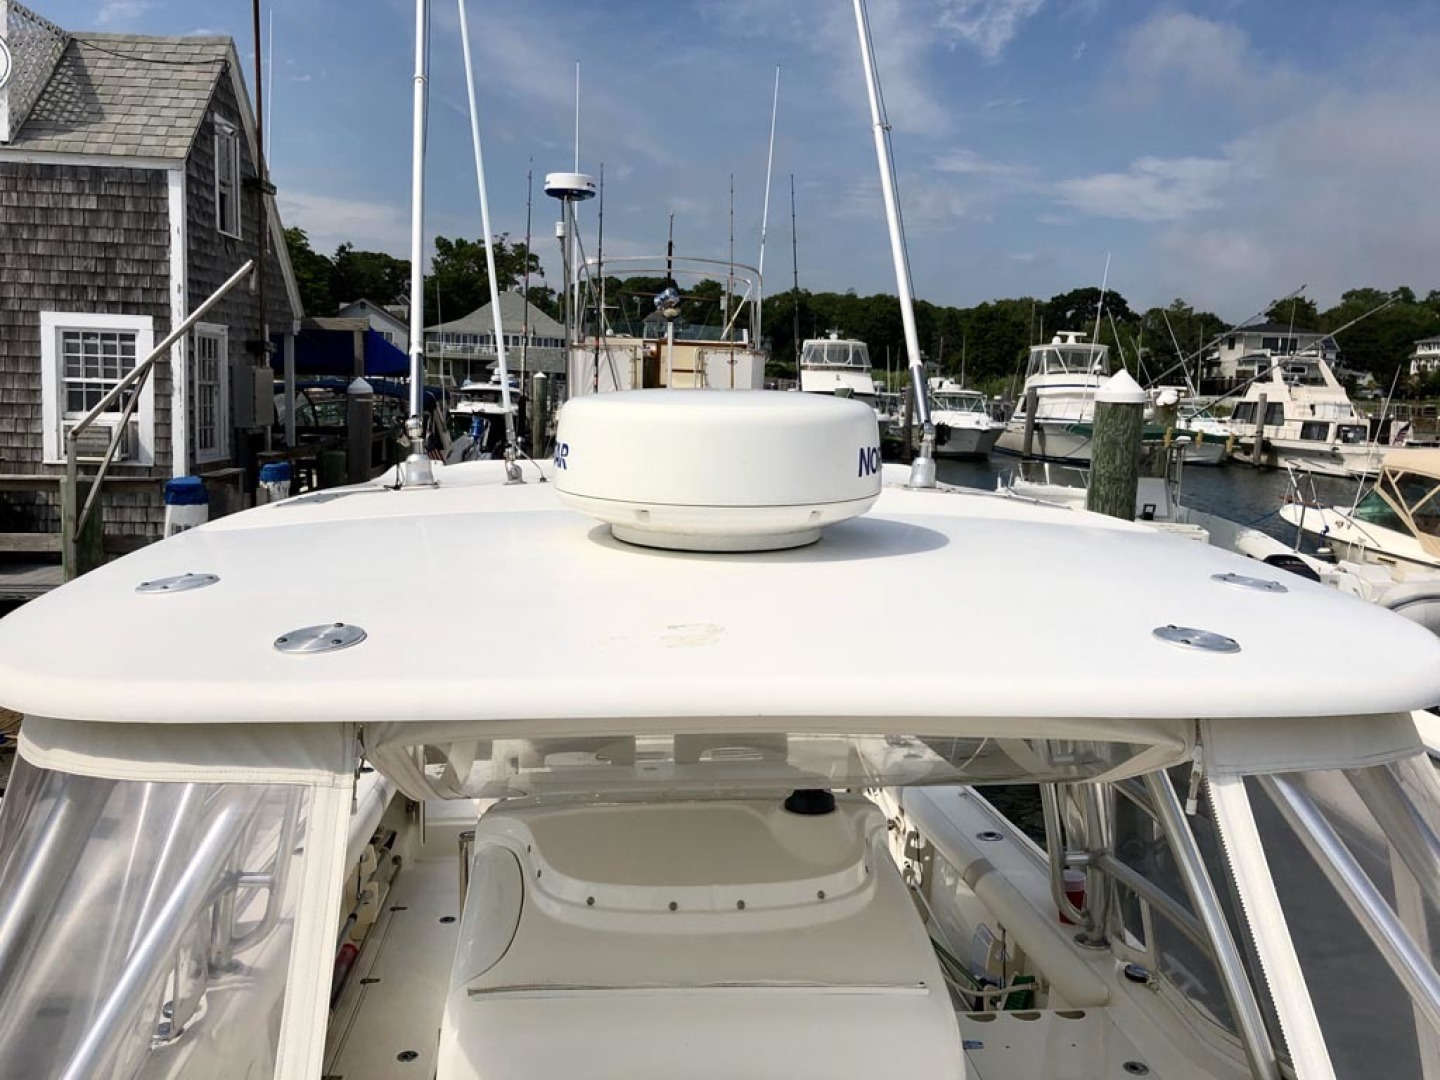 Boston Whaler-320 Outrage Cuddy Cabin 2008 -Onset-Massachusetts-United States-Hardtop Radar-1447528 | Thumbnail